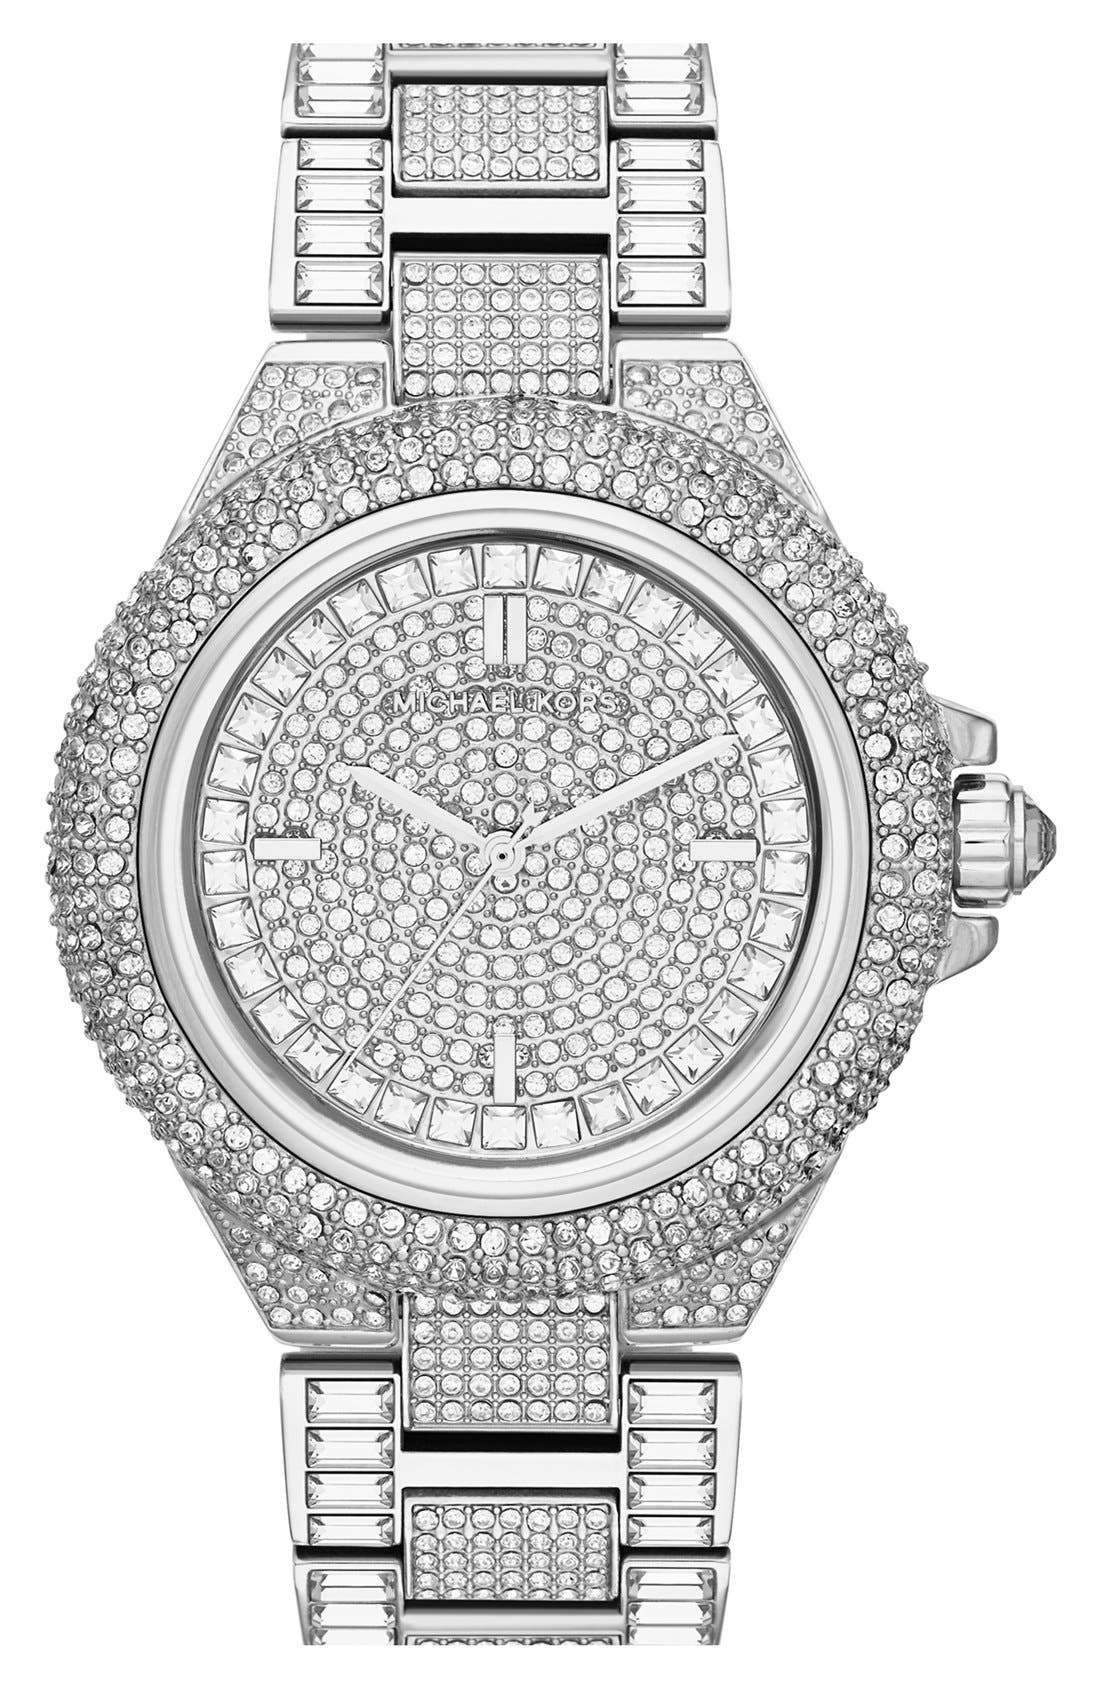 Alternate Image 1 Selected - Michael Kors 'Camille' Crystal Encrusted Bracelet Watch, 44mm